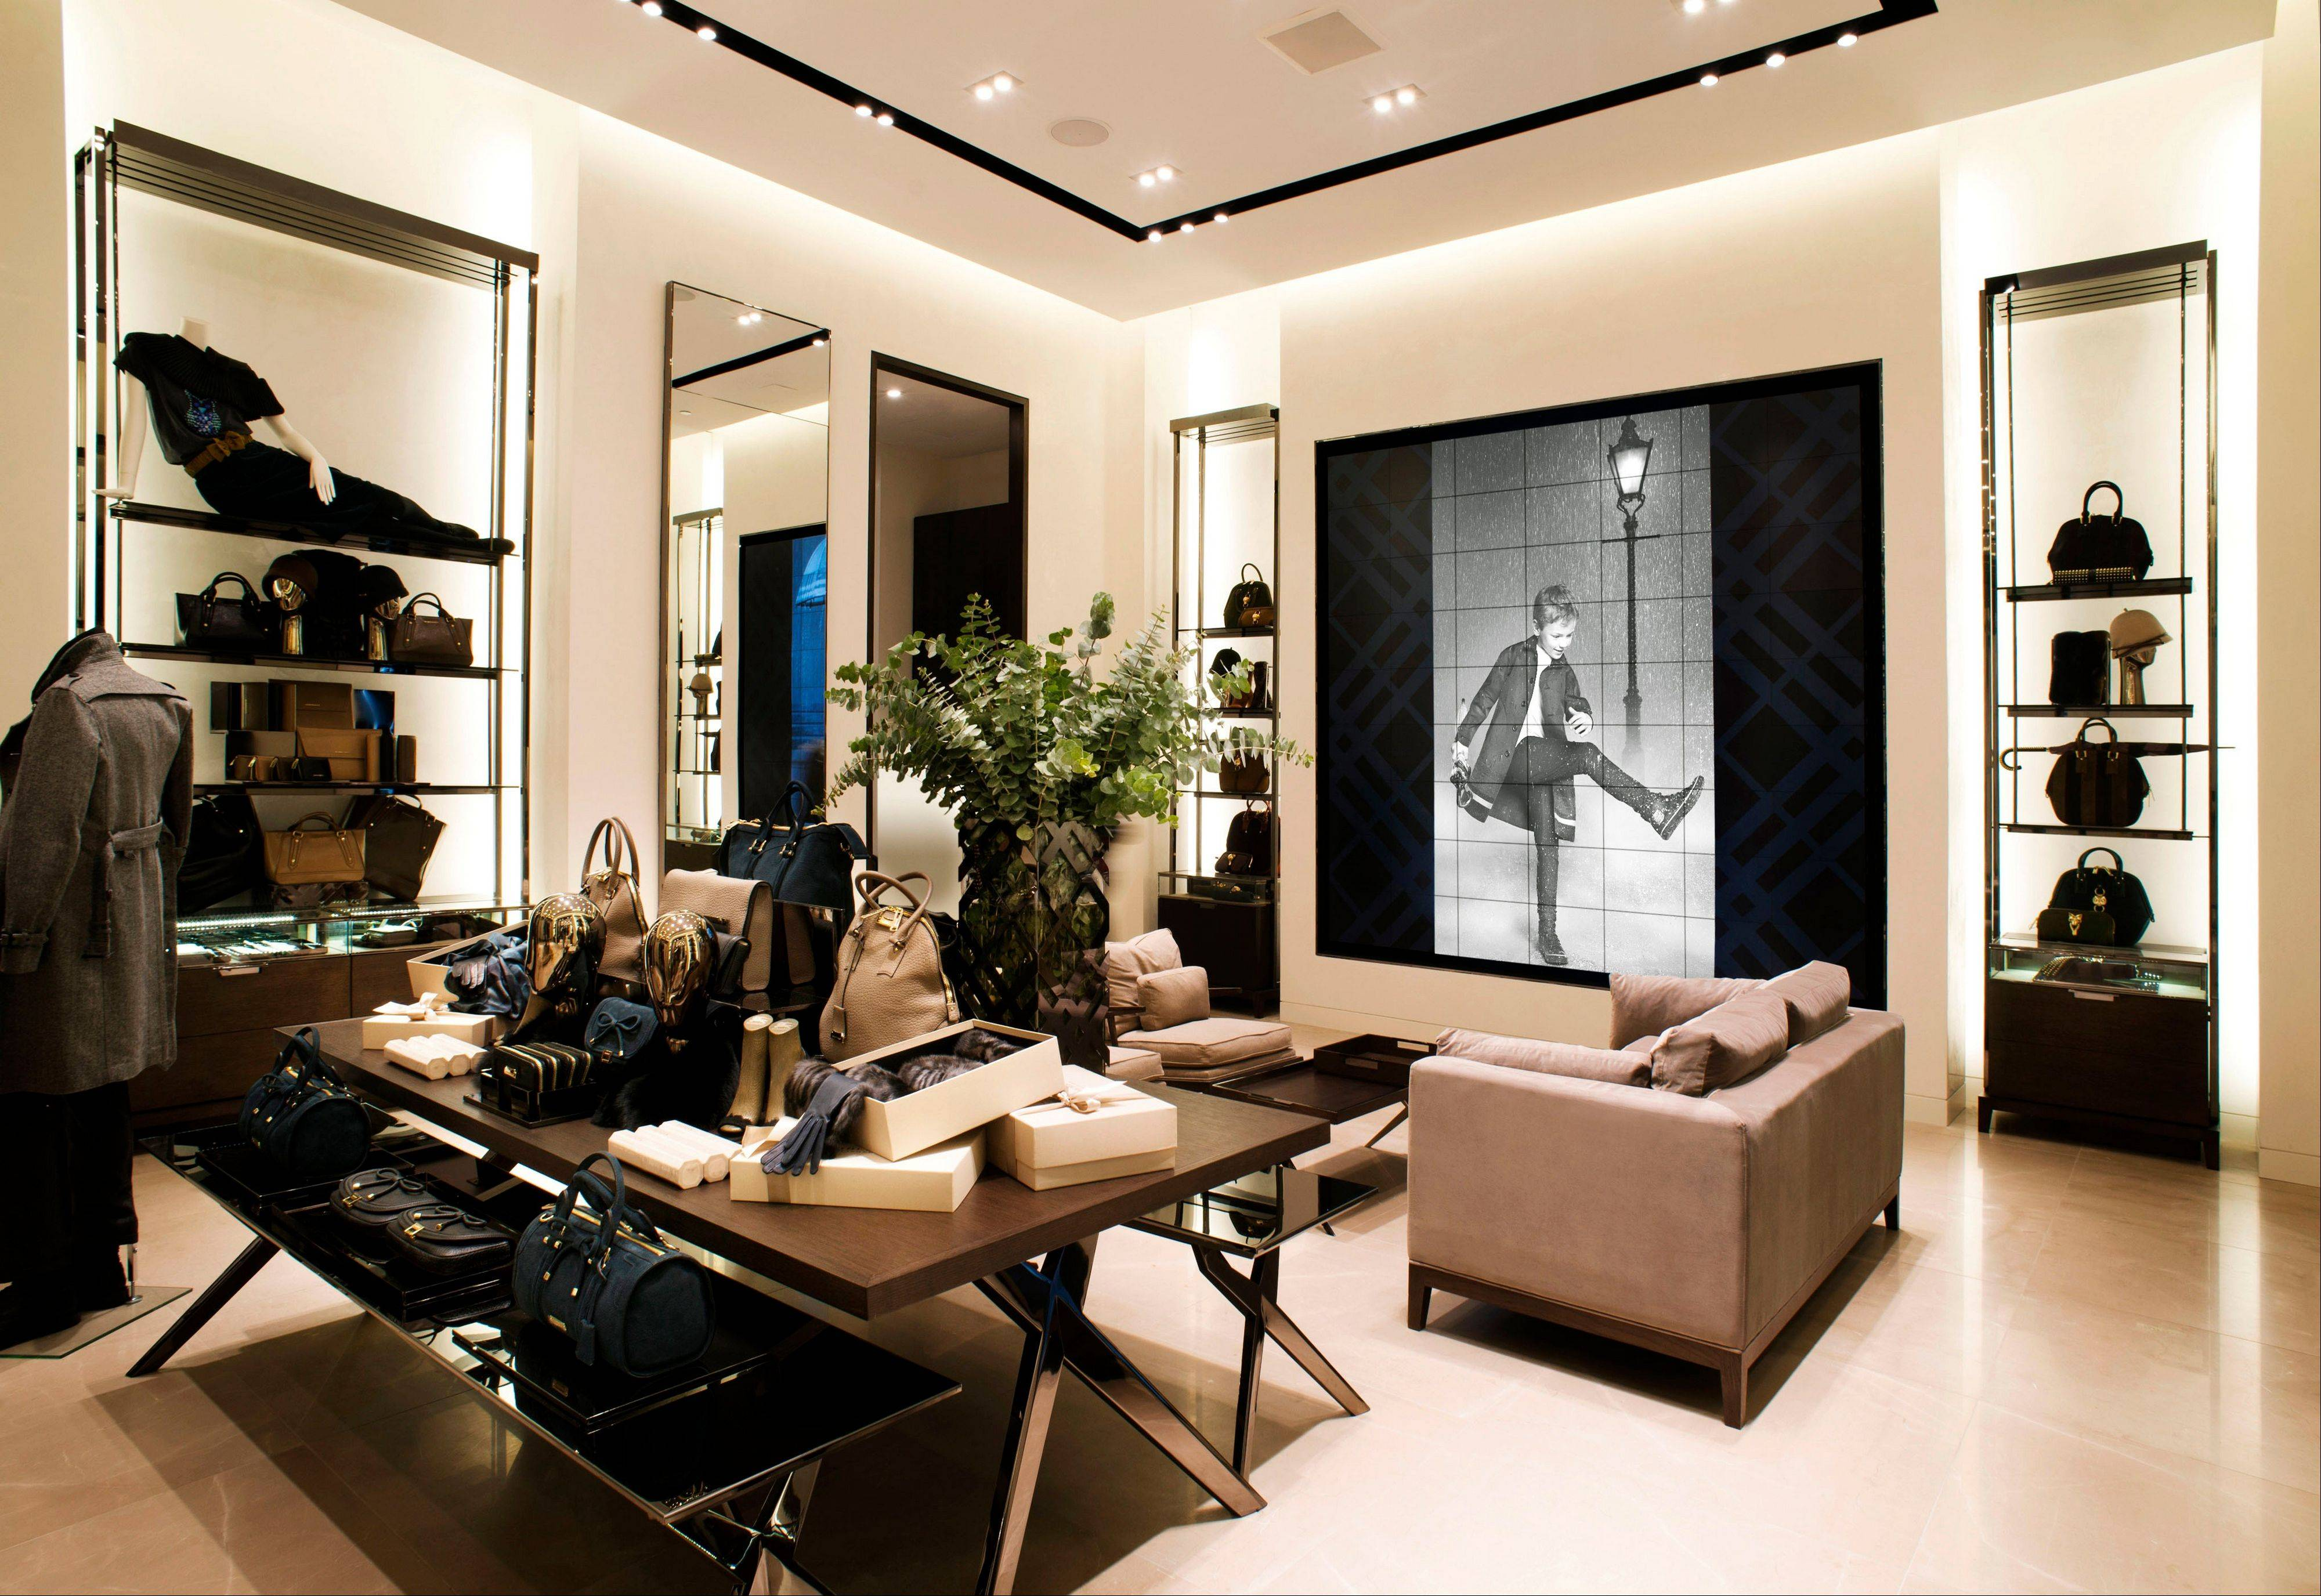 An interior view of the new Burberry flagship store on Michigan Avenue in Chicago. Burberry is interacting directly with consumers in the digital sphere too, launching projects like artofthetrench.com. The website invites users to upload pictures of themselves wearing BURBERRY trenchcoats.